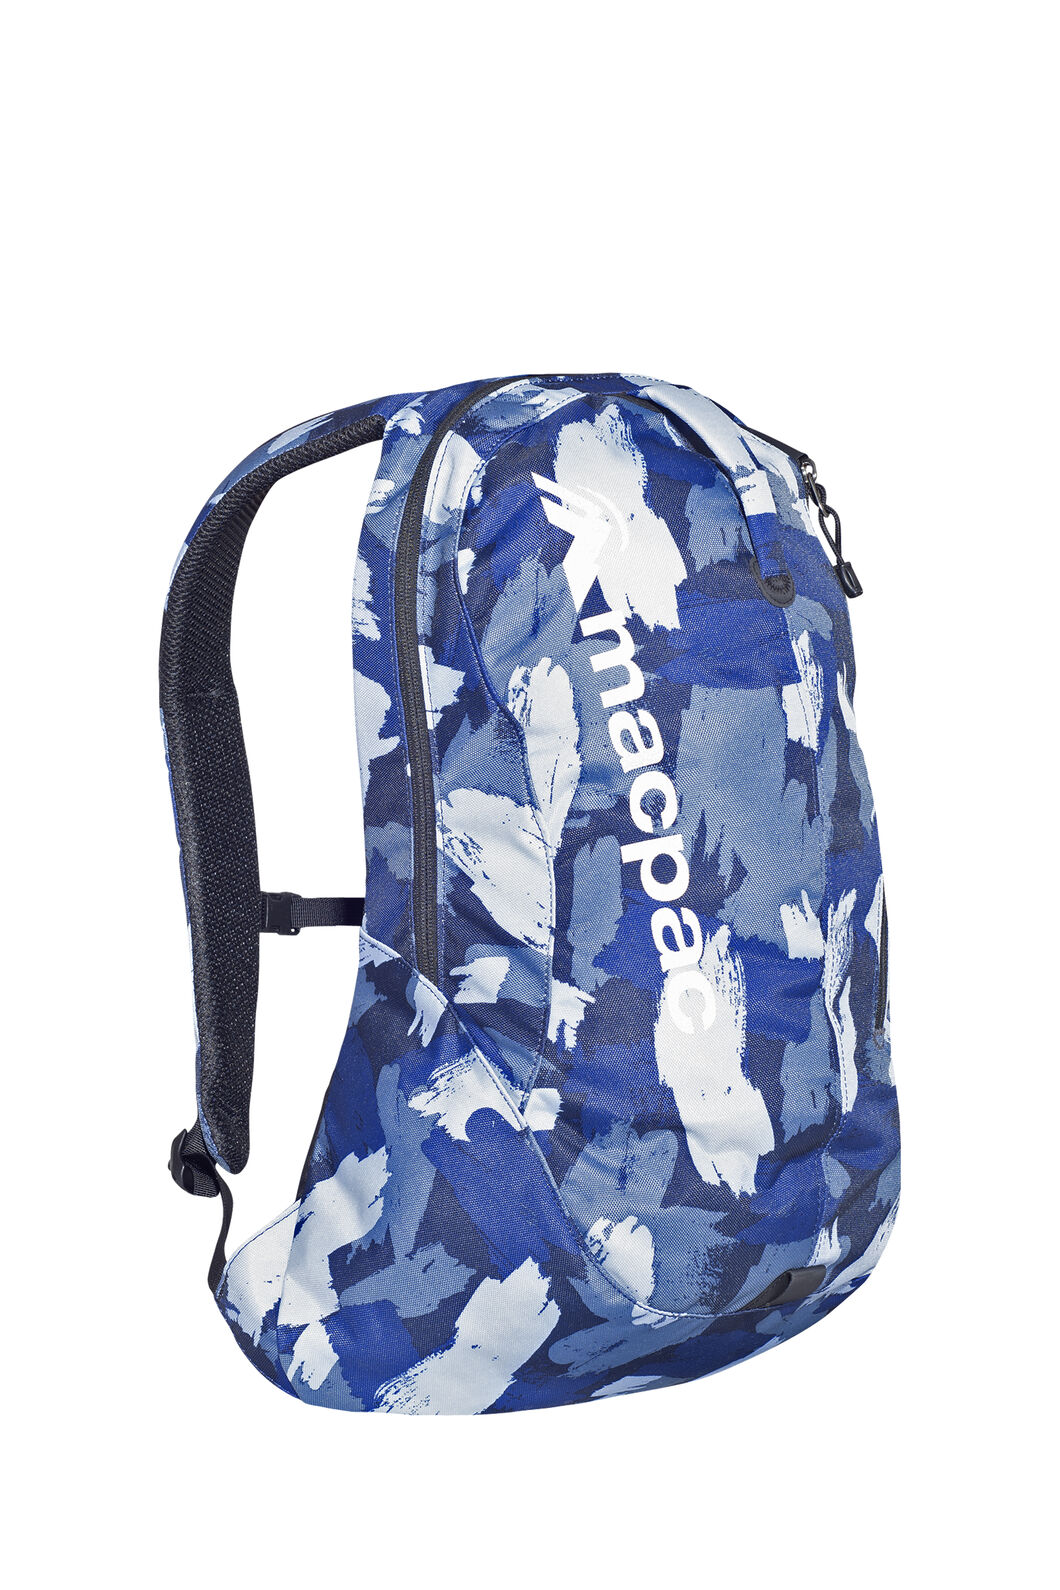 Kahuna 18L Hiking Day Pack, Camo Paint, hi-res